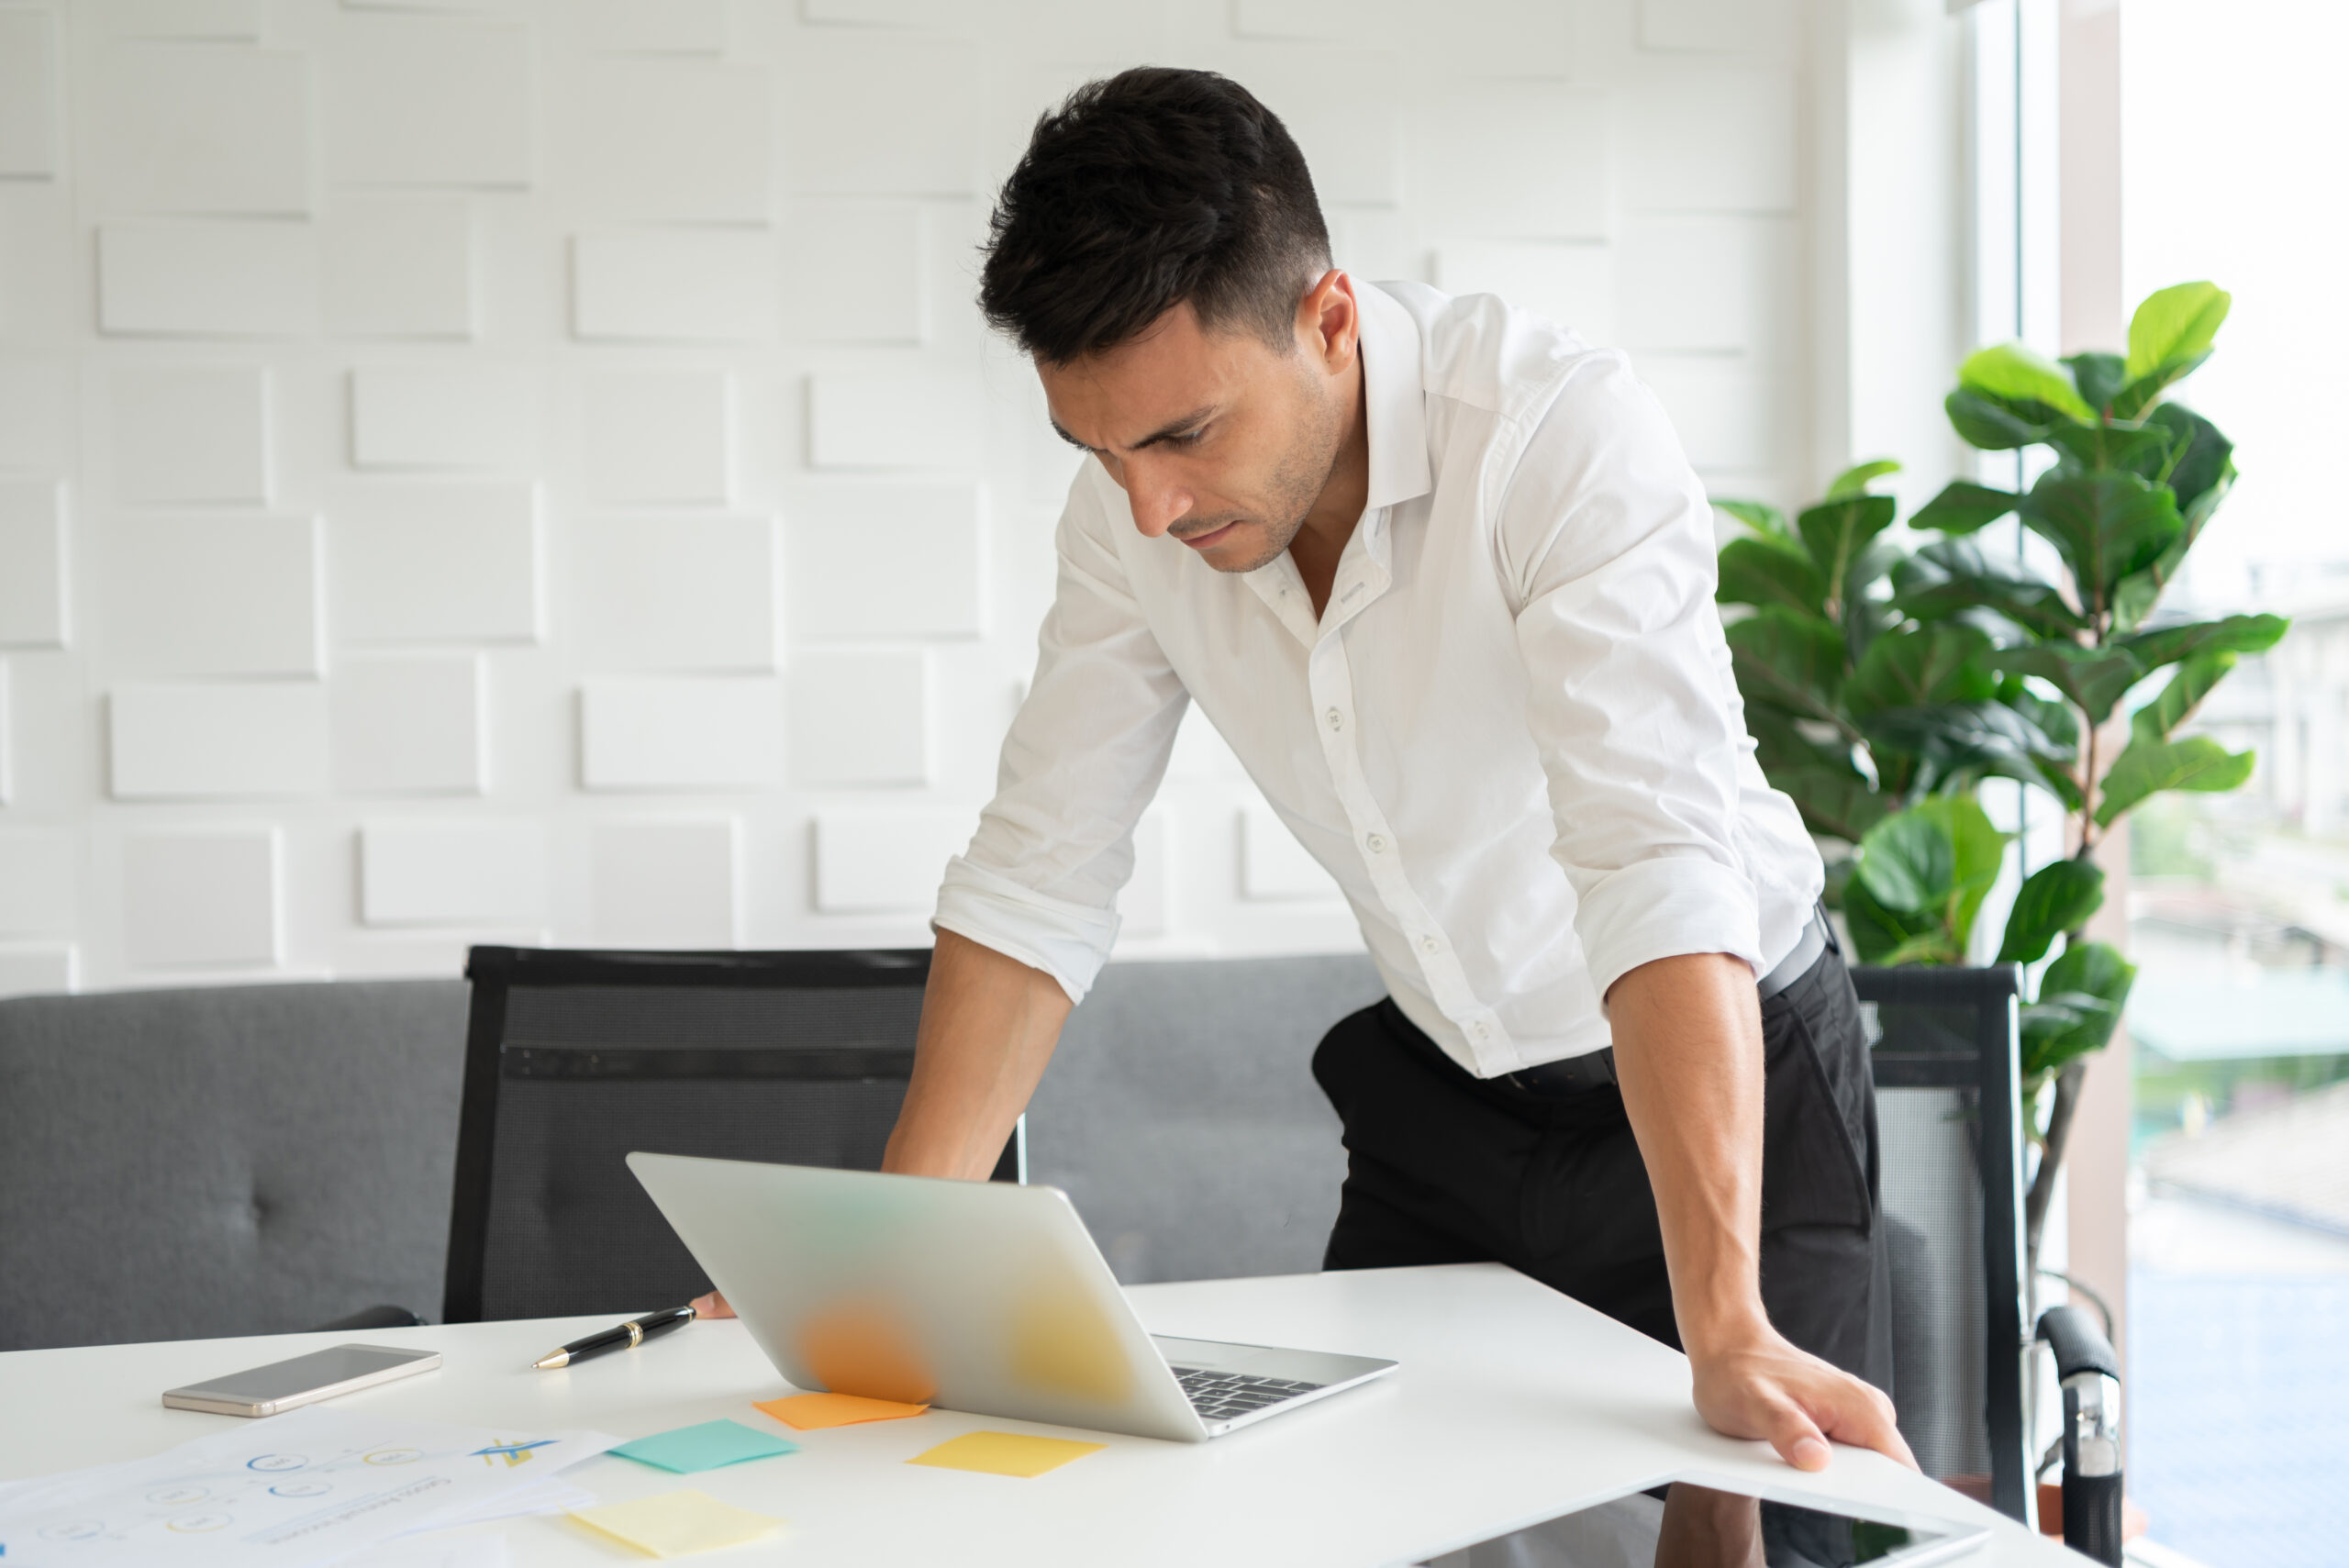 Young businessman is standing with hands on desk, looking at a laptop.